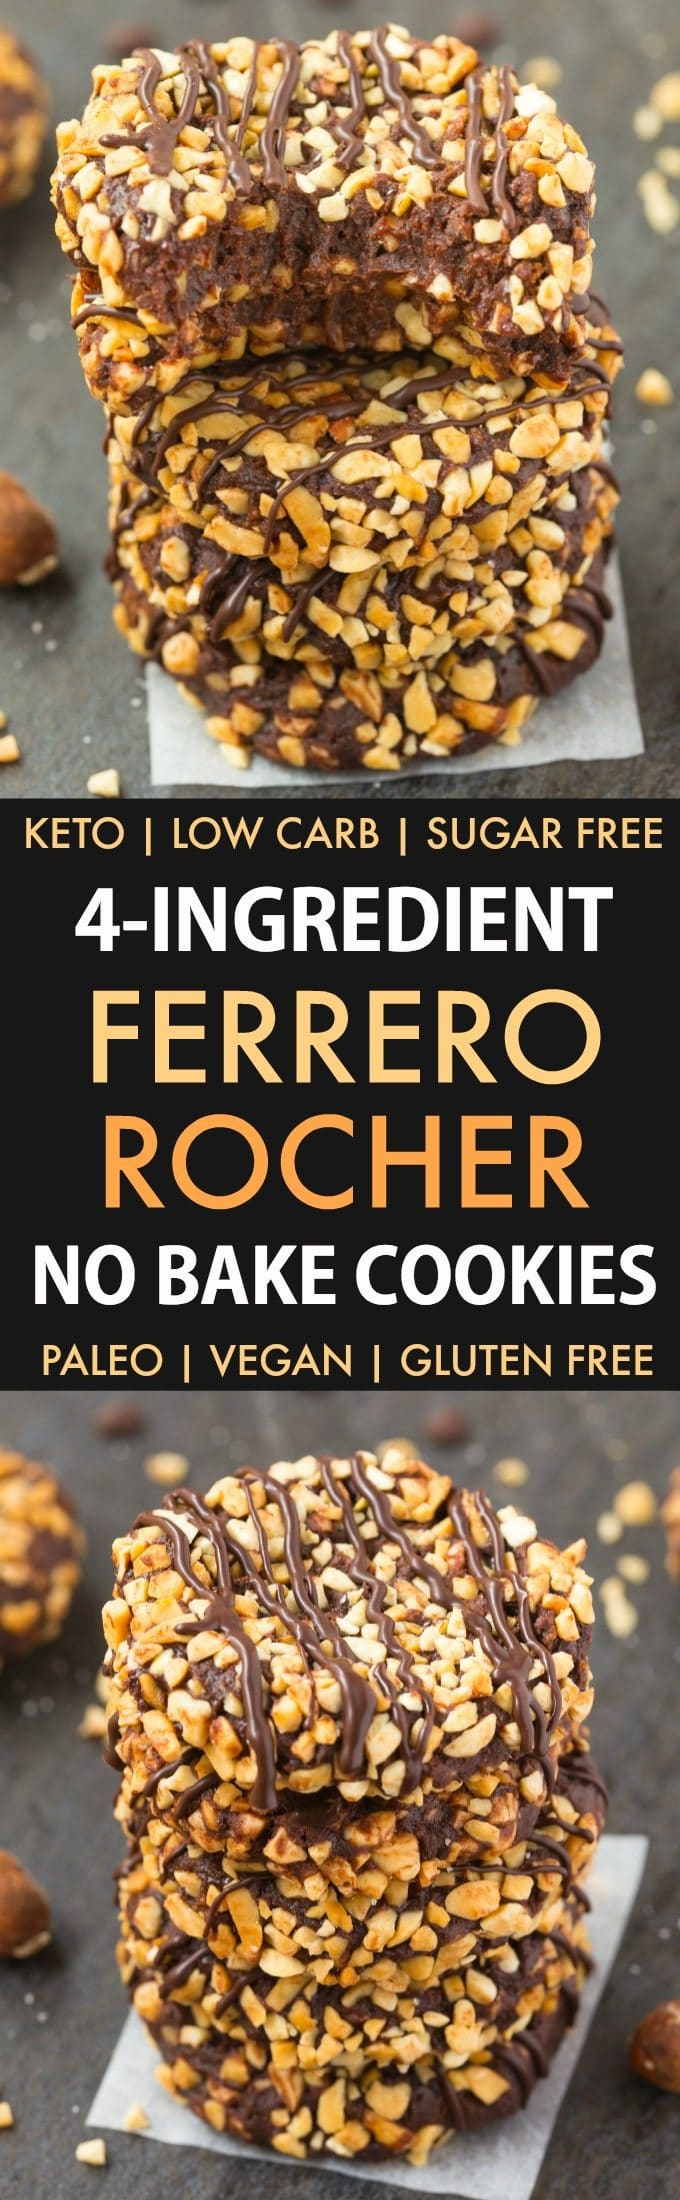 No Bake Paleo Vegan cookies